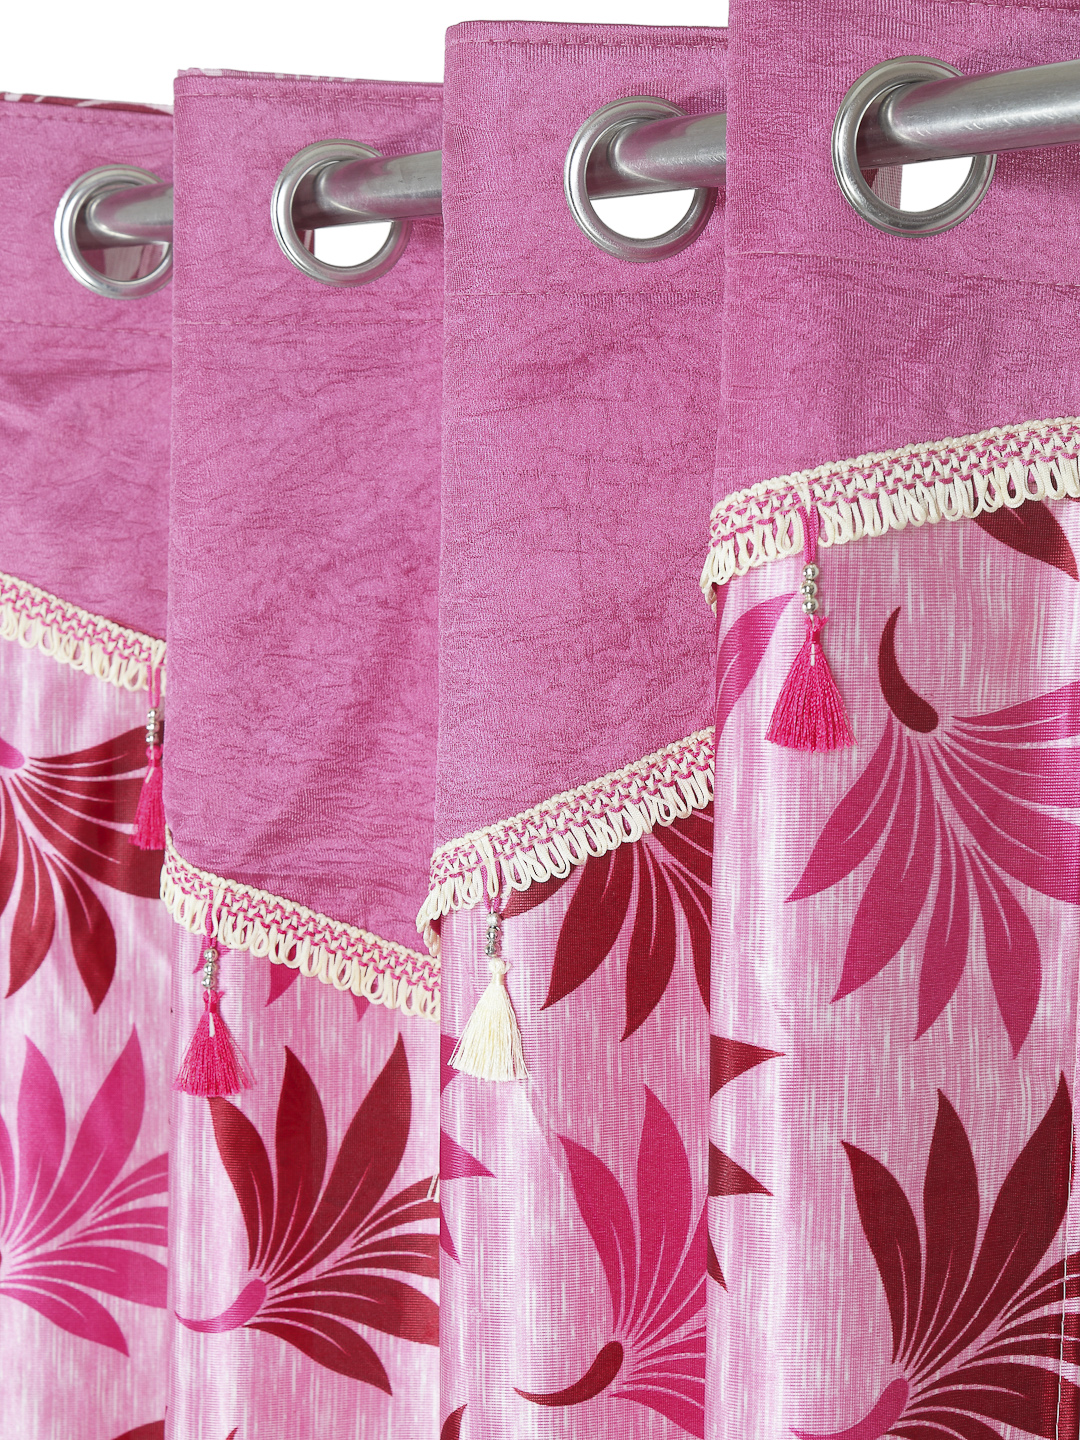 Cortina - Pack of 2 Decorative, Fancy, Eyelet Door Curtain set (210 x 115 cm), All over Leafy pattern, Pink, Fringe and tassle detail